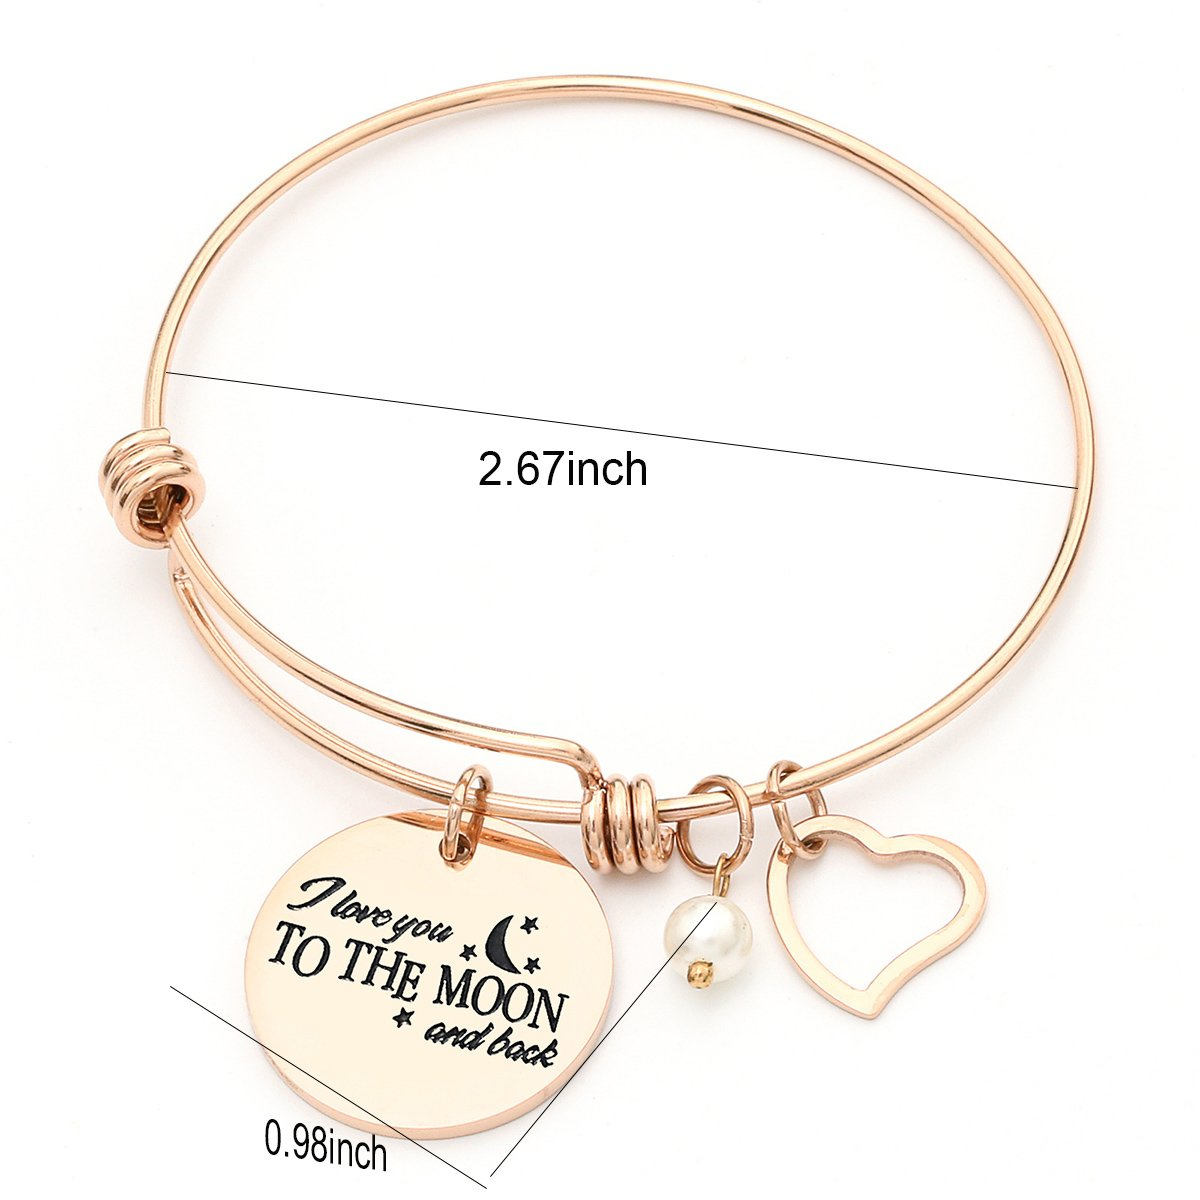 MONASOC Charm Bracelet i love you to the moon and back Expandable Pearl Bangle Gift jewerly For Women Girl Sister Mother Friends by MONASOC (Image #2)